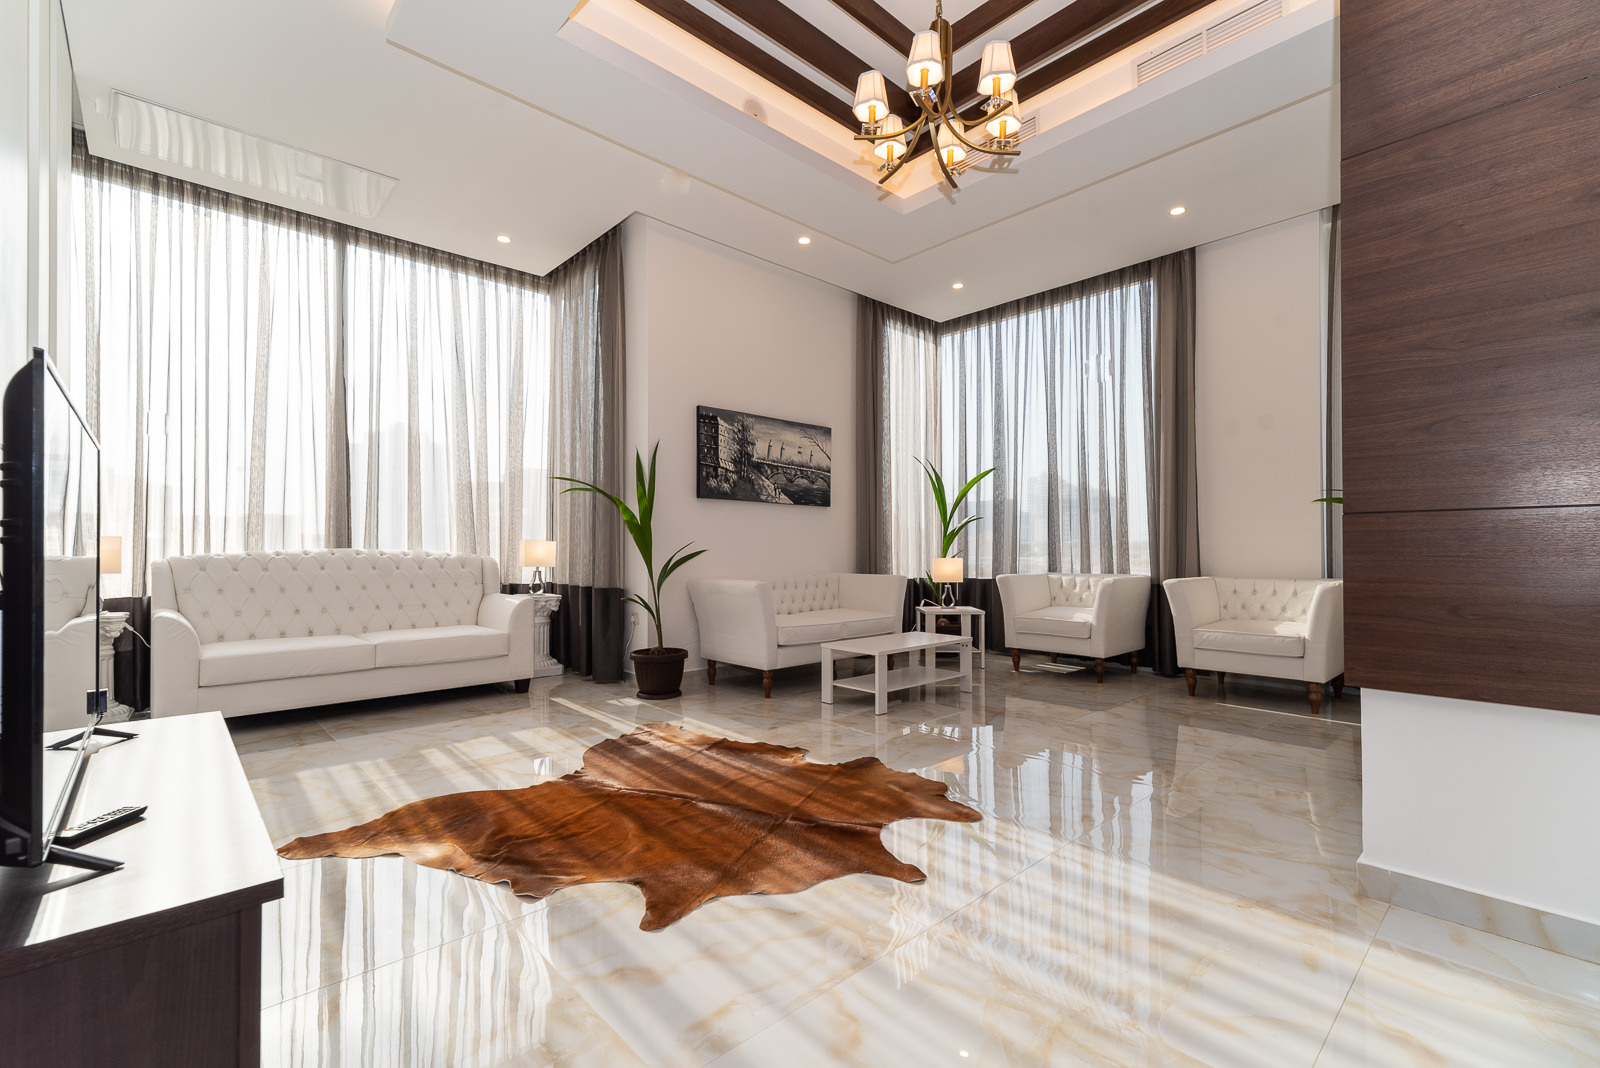 Sabah Al Salem – brand new, two bedroom apartments